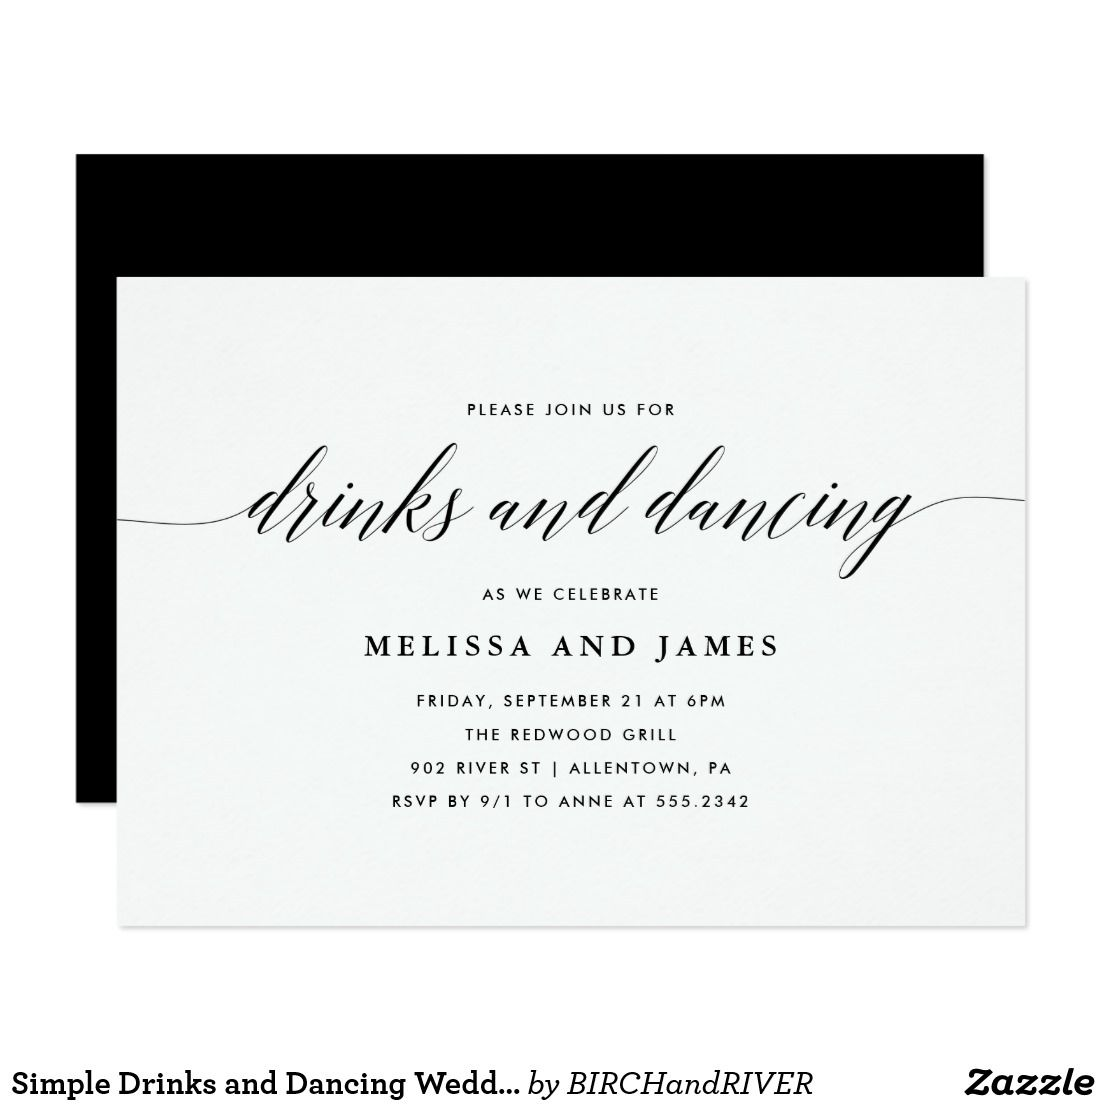 Simple Drinks And Dancing Wedding Invitation Zazzle Com Wedding Reception Invitation Wording Cocktail Wedding Reception Wedding Cocktail Invitation